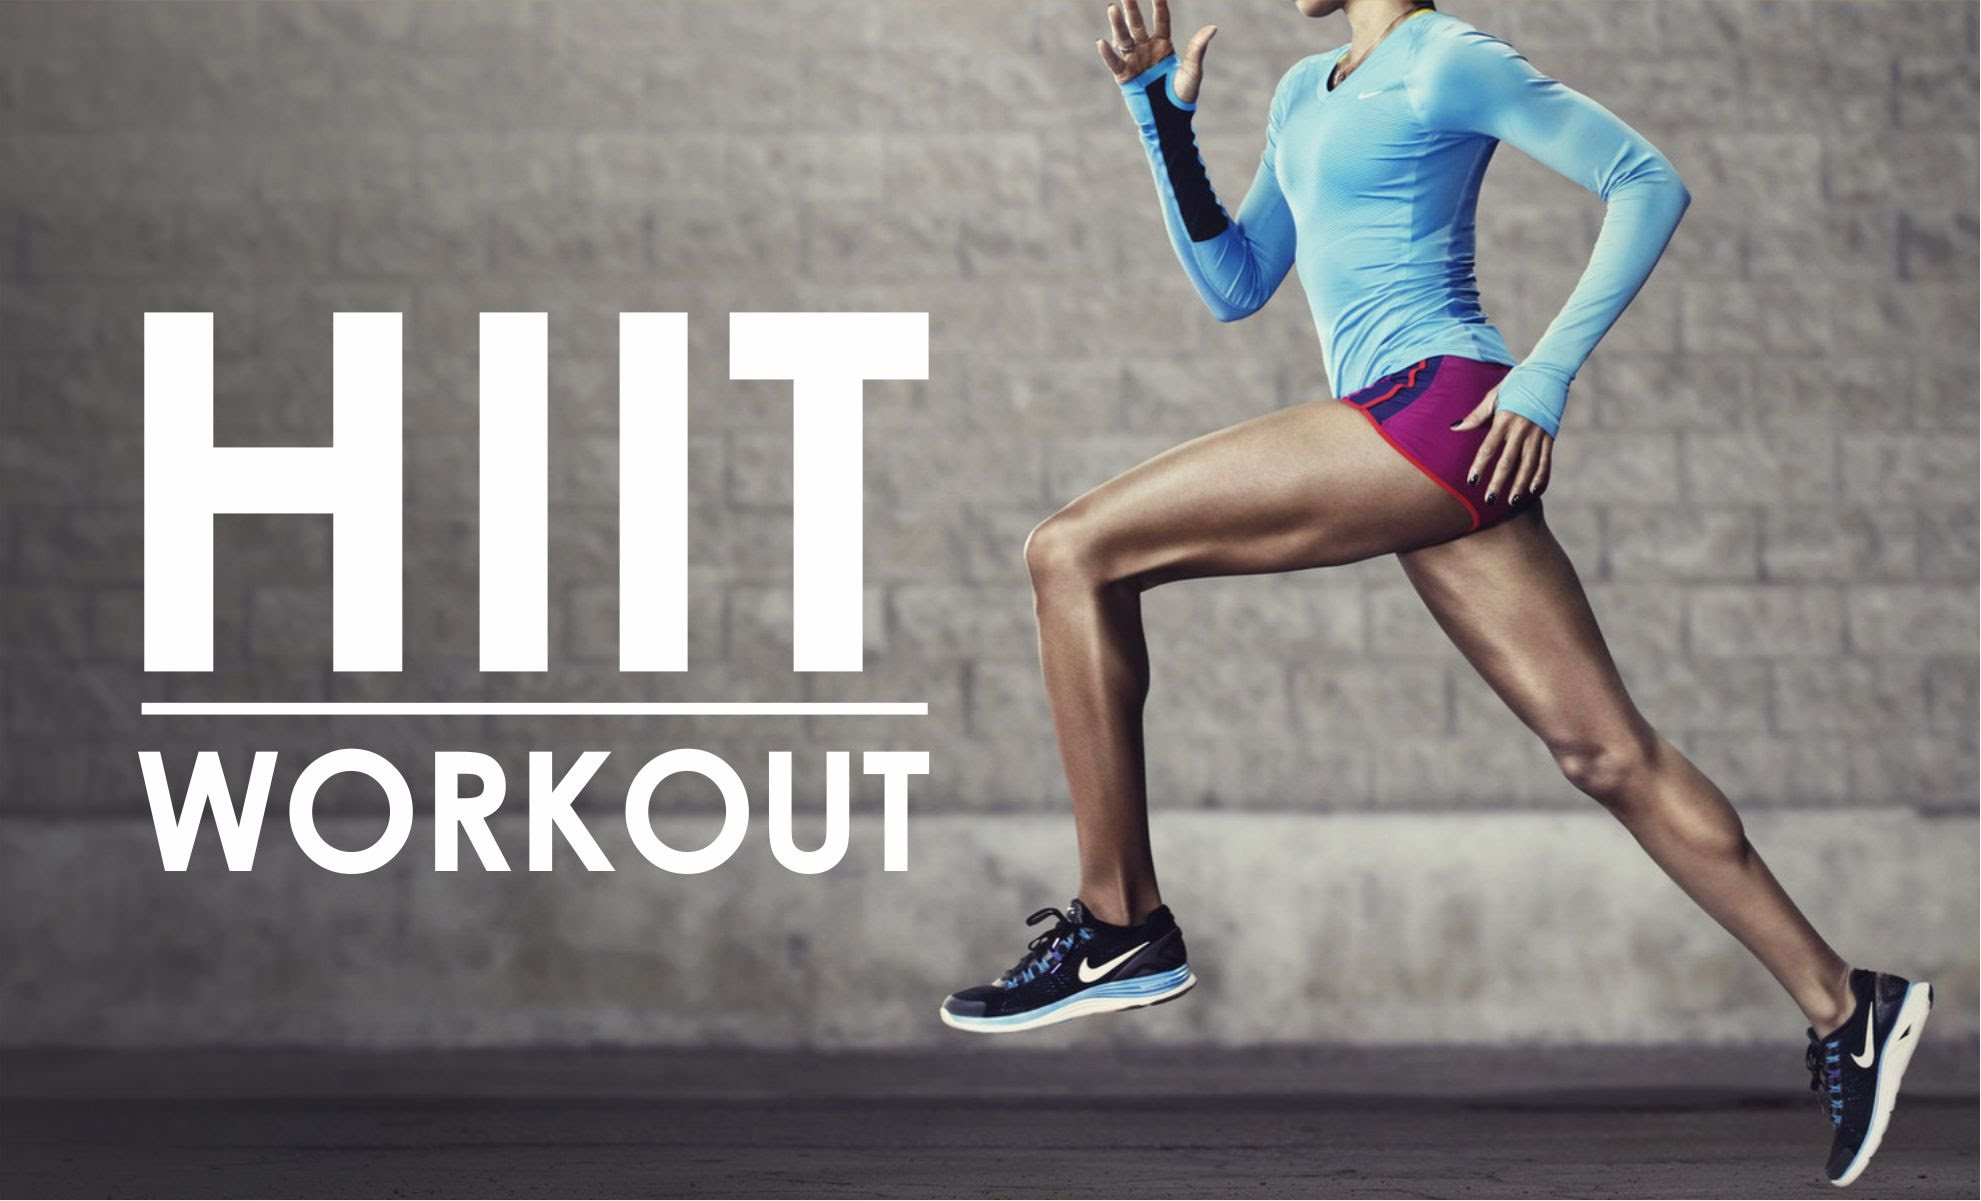 7 HIIT Cardio Workouts To Burn Fat From Hips, Thighs & Belly